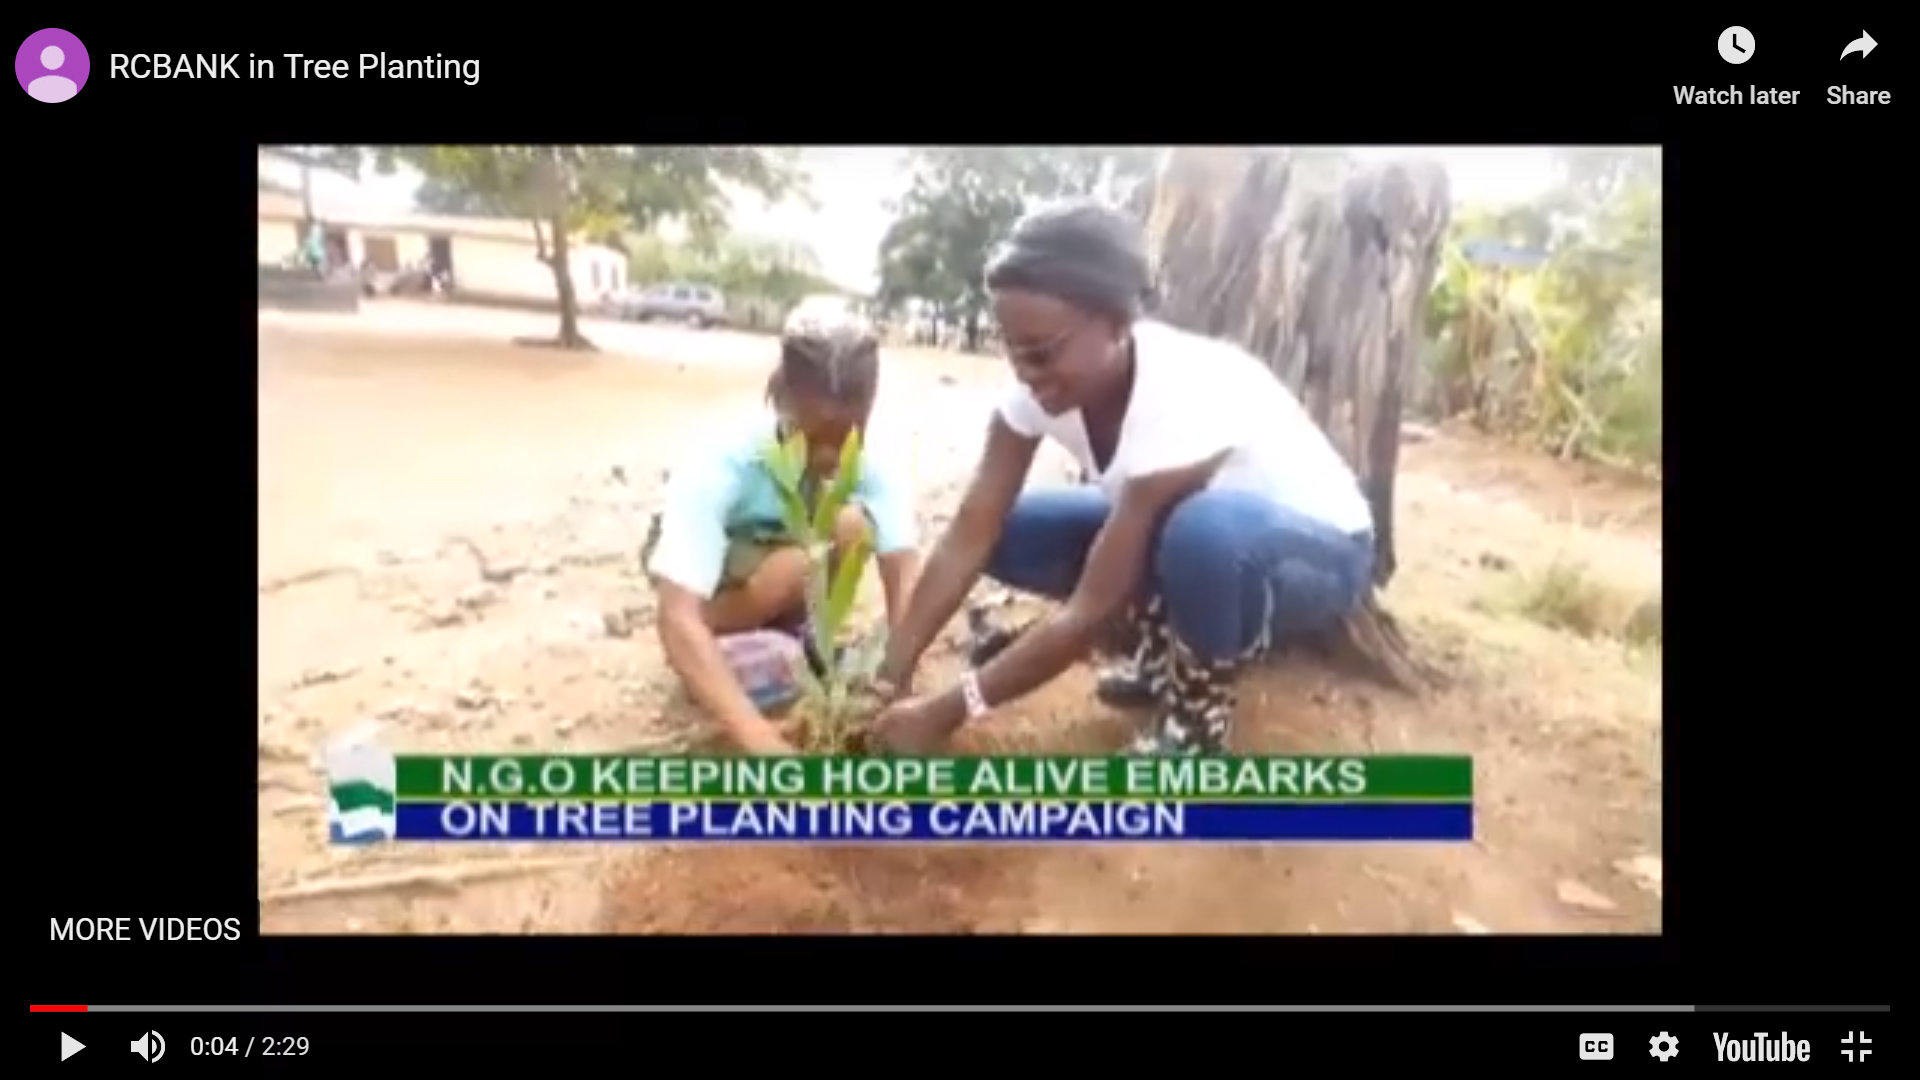 RCBank in Tree Planting